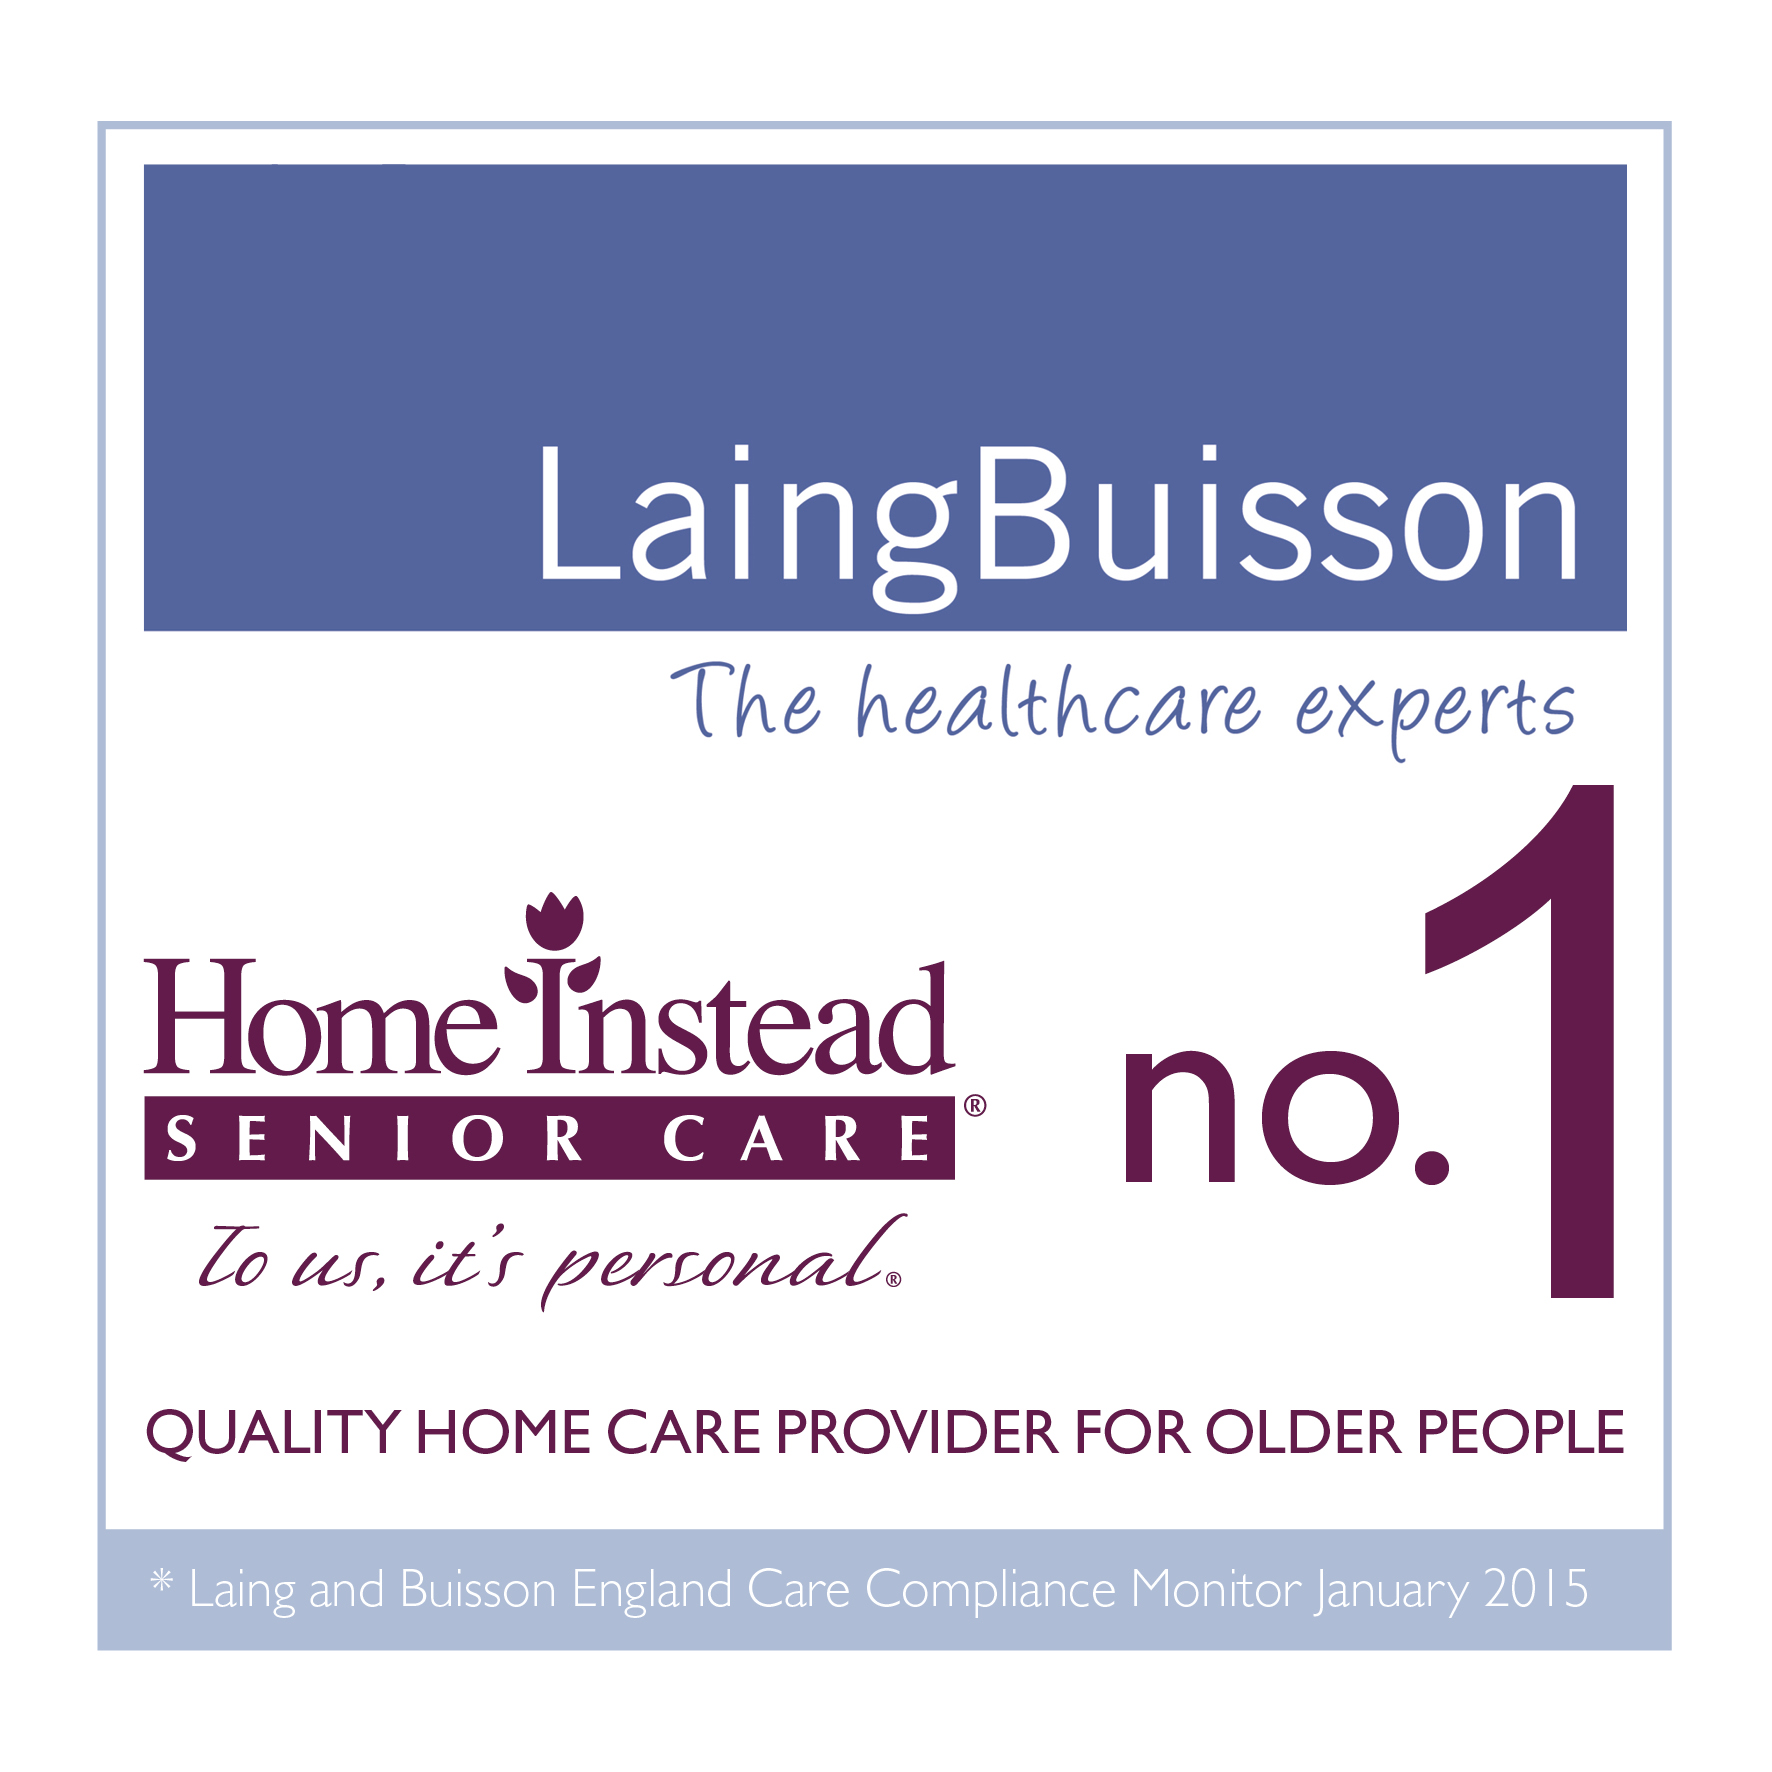 Once again, Home Instead is leading as the no.1 homecare provider for the elderly, according to Laing Buisson